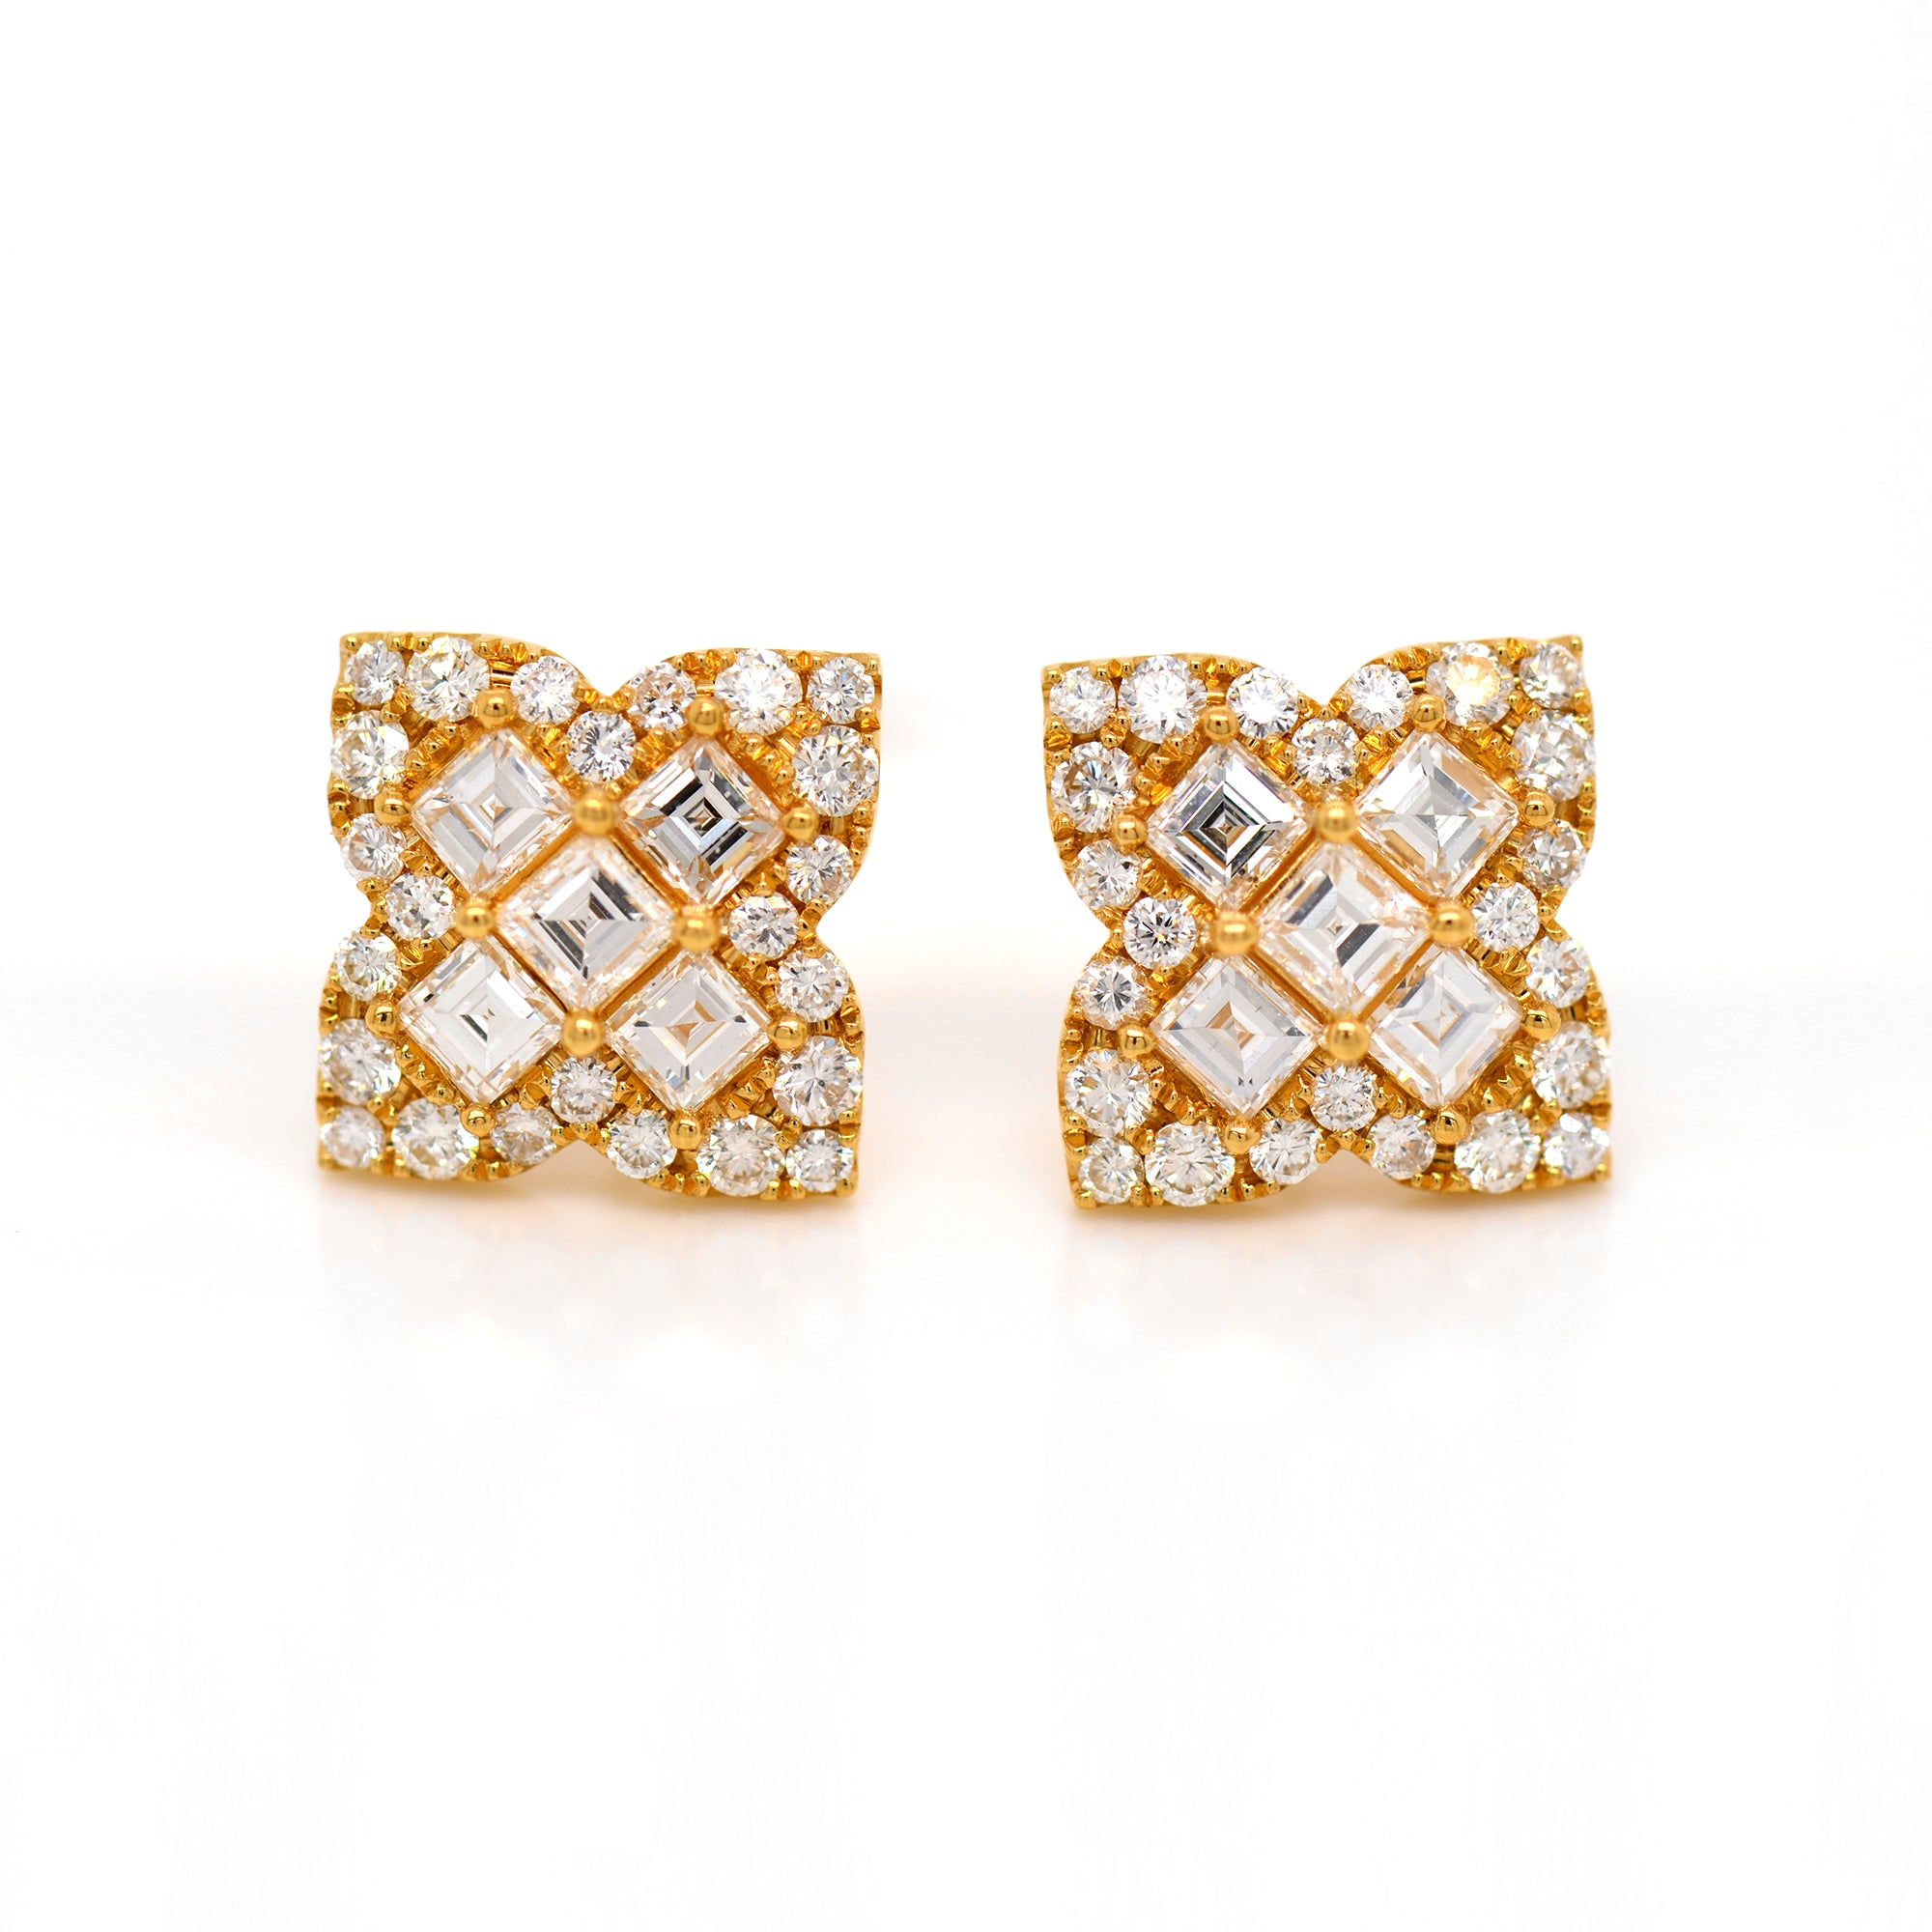 18K yellow gold diamond earrings featuring Asscher and round diamonds weighing a total of 2.78 carats set in a 4-point clover design.